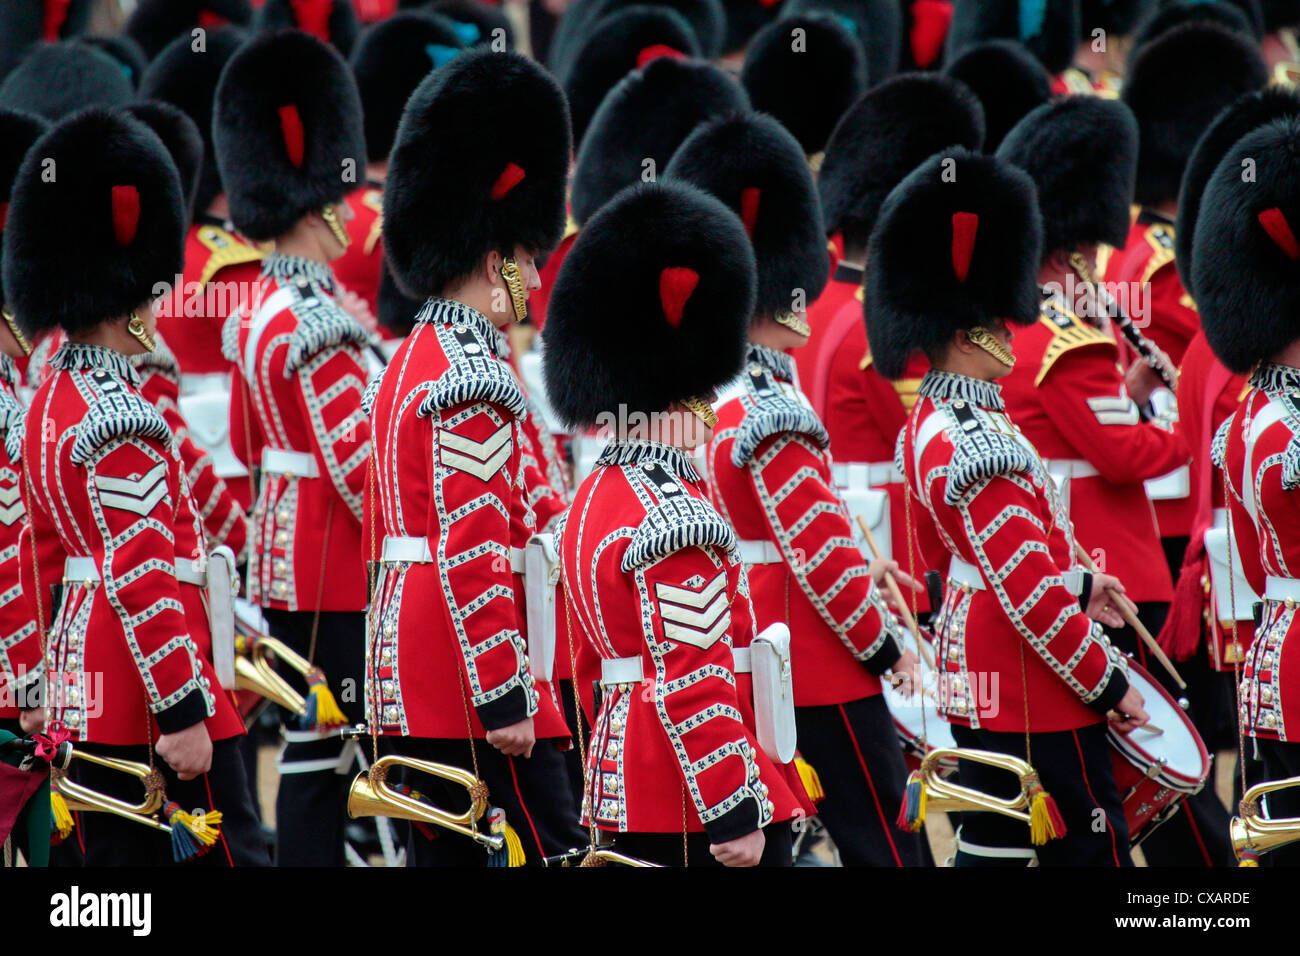 Soldiers at Trooping the Colour 2012, The Queen's Birthday Parade, Horse Guards, Whitehall, London, England, - Stock Image